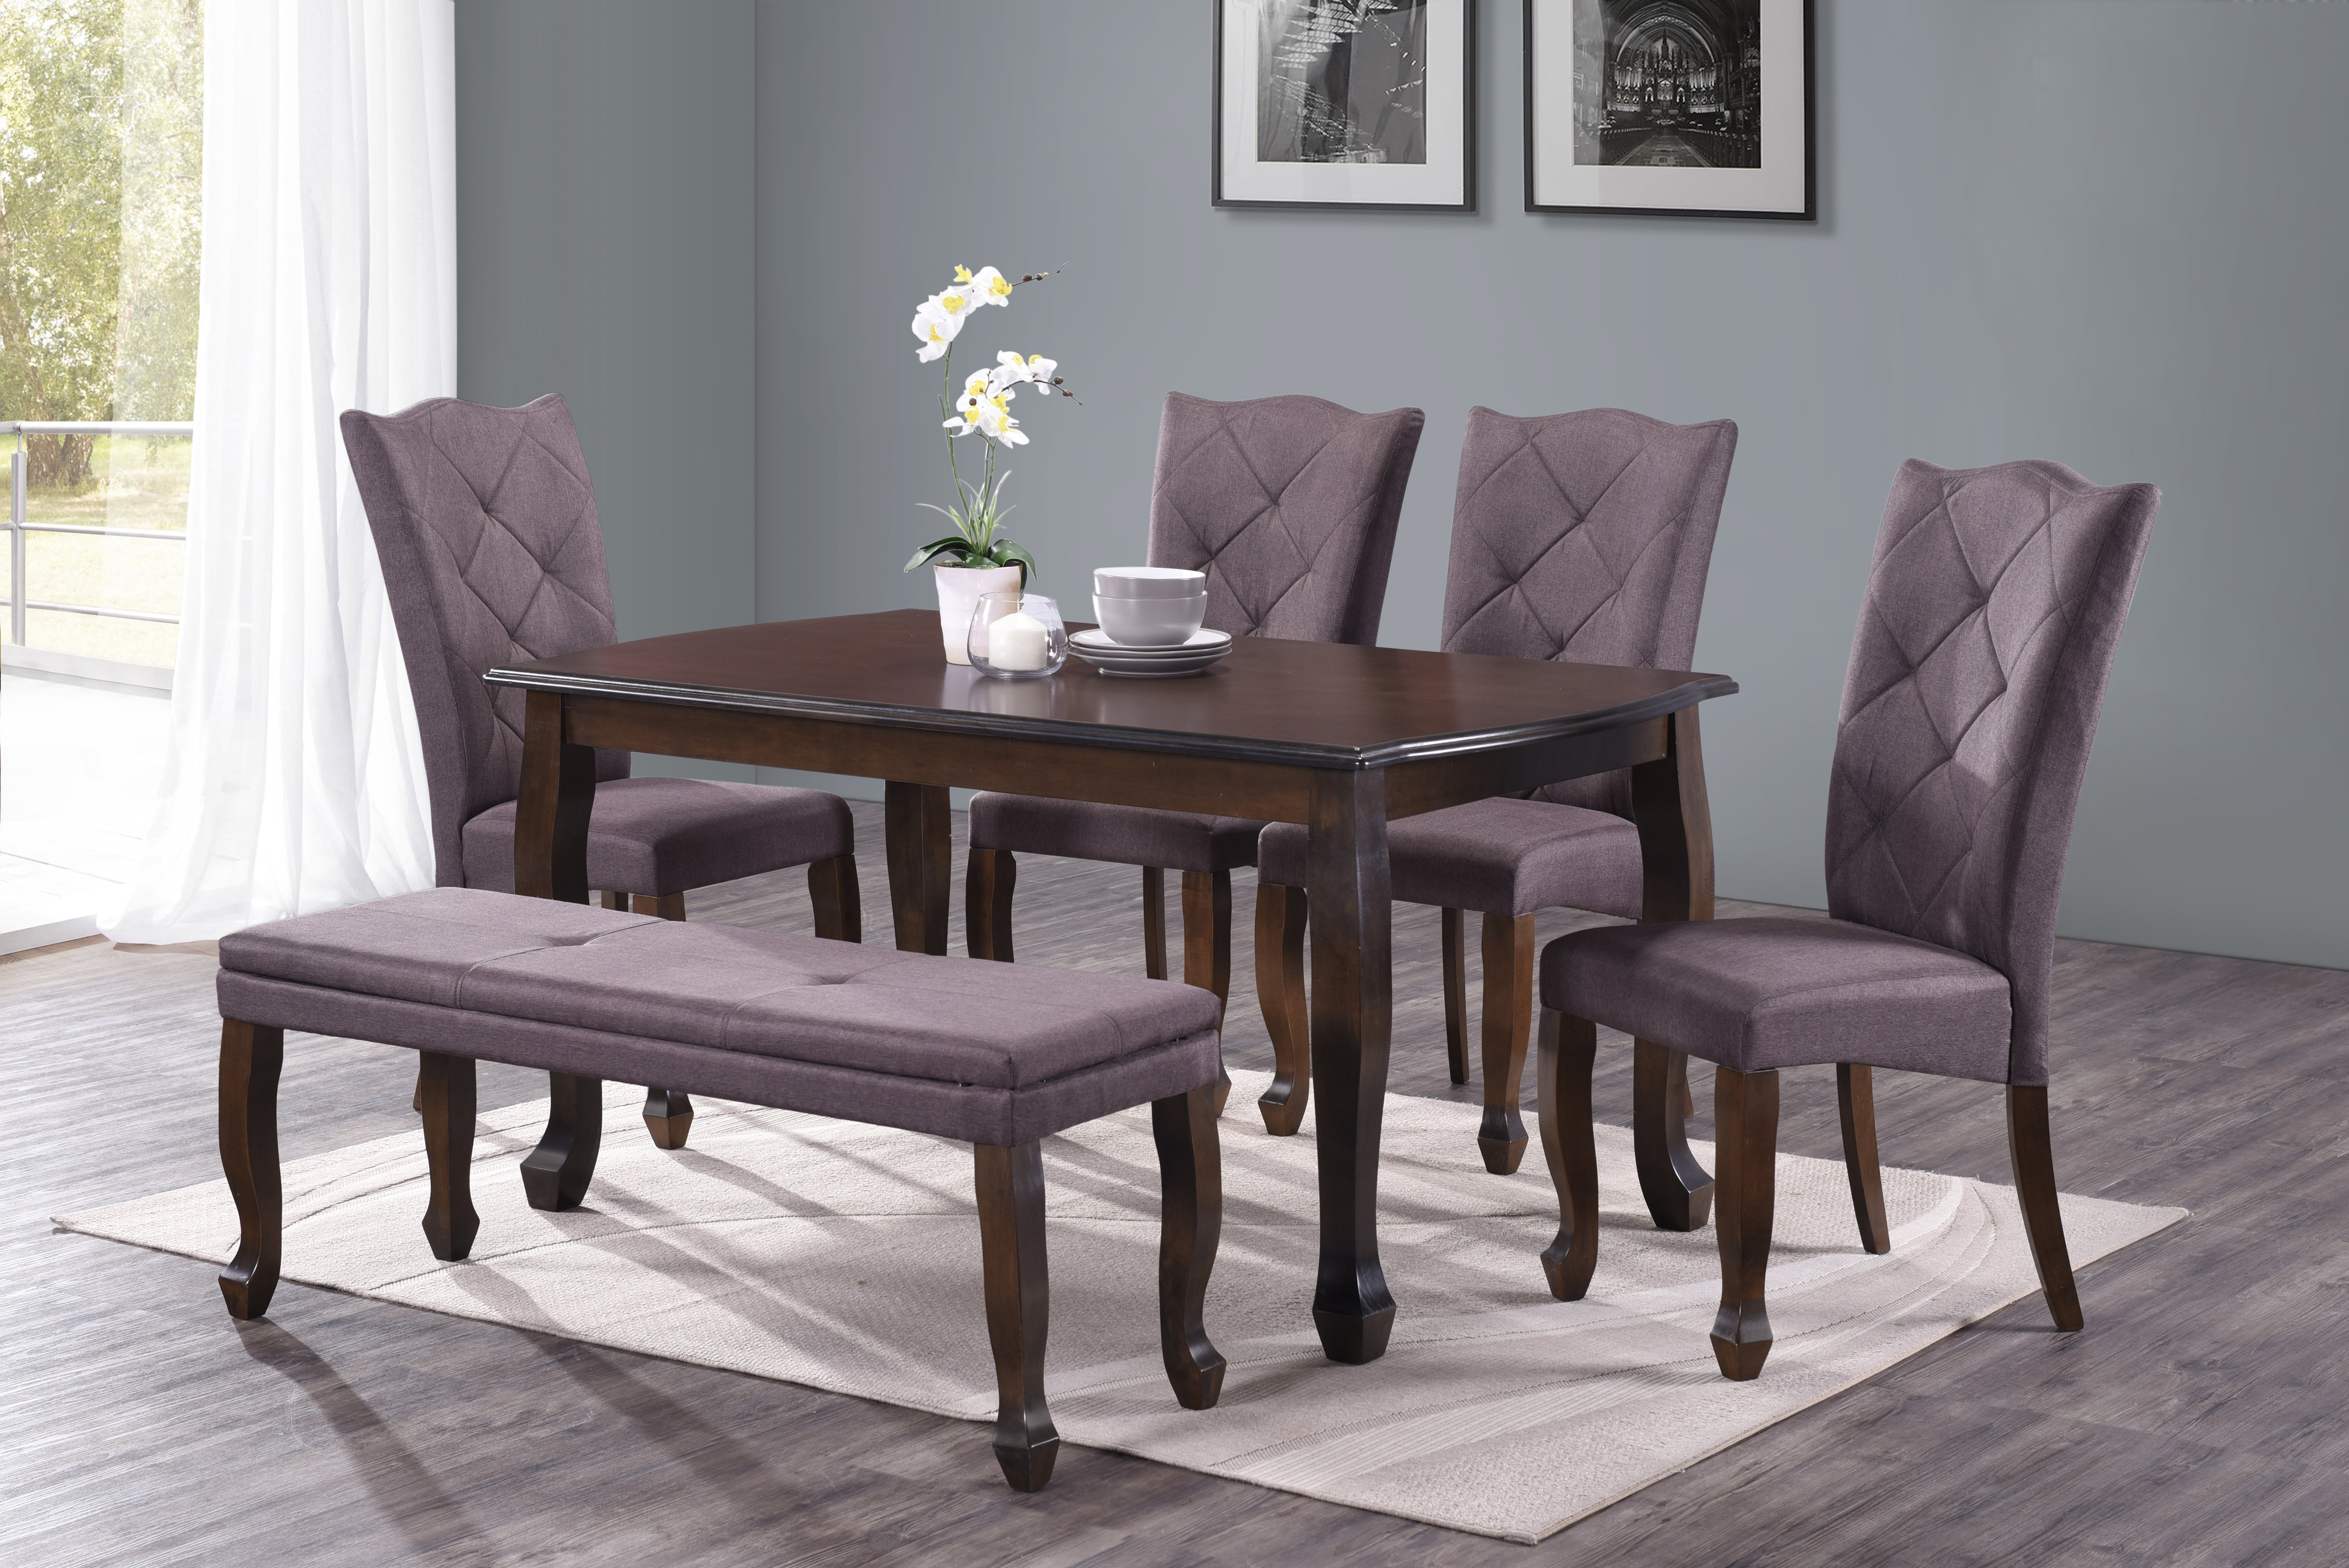 Reyer 6 Piece Dining Set With Regard To Most Up To Date Springfield 3 Piece Dining Sets (View 6 of 20)